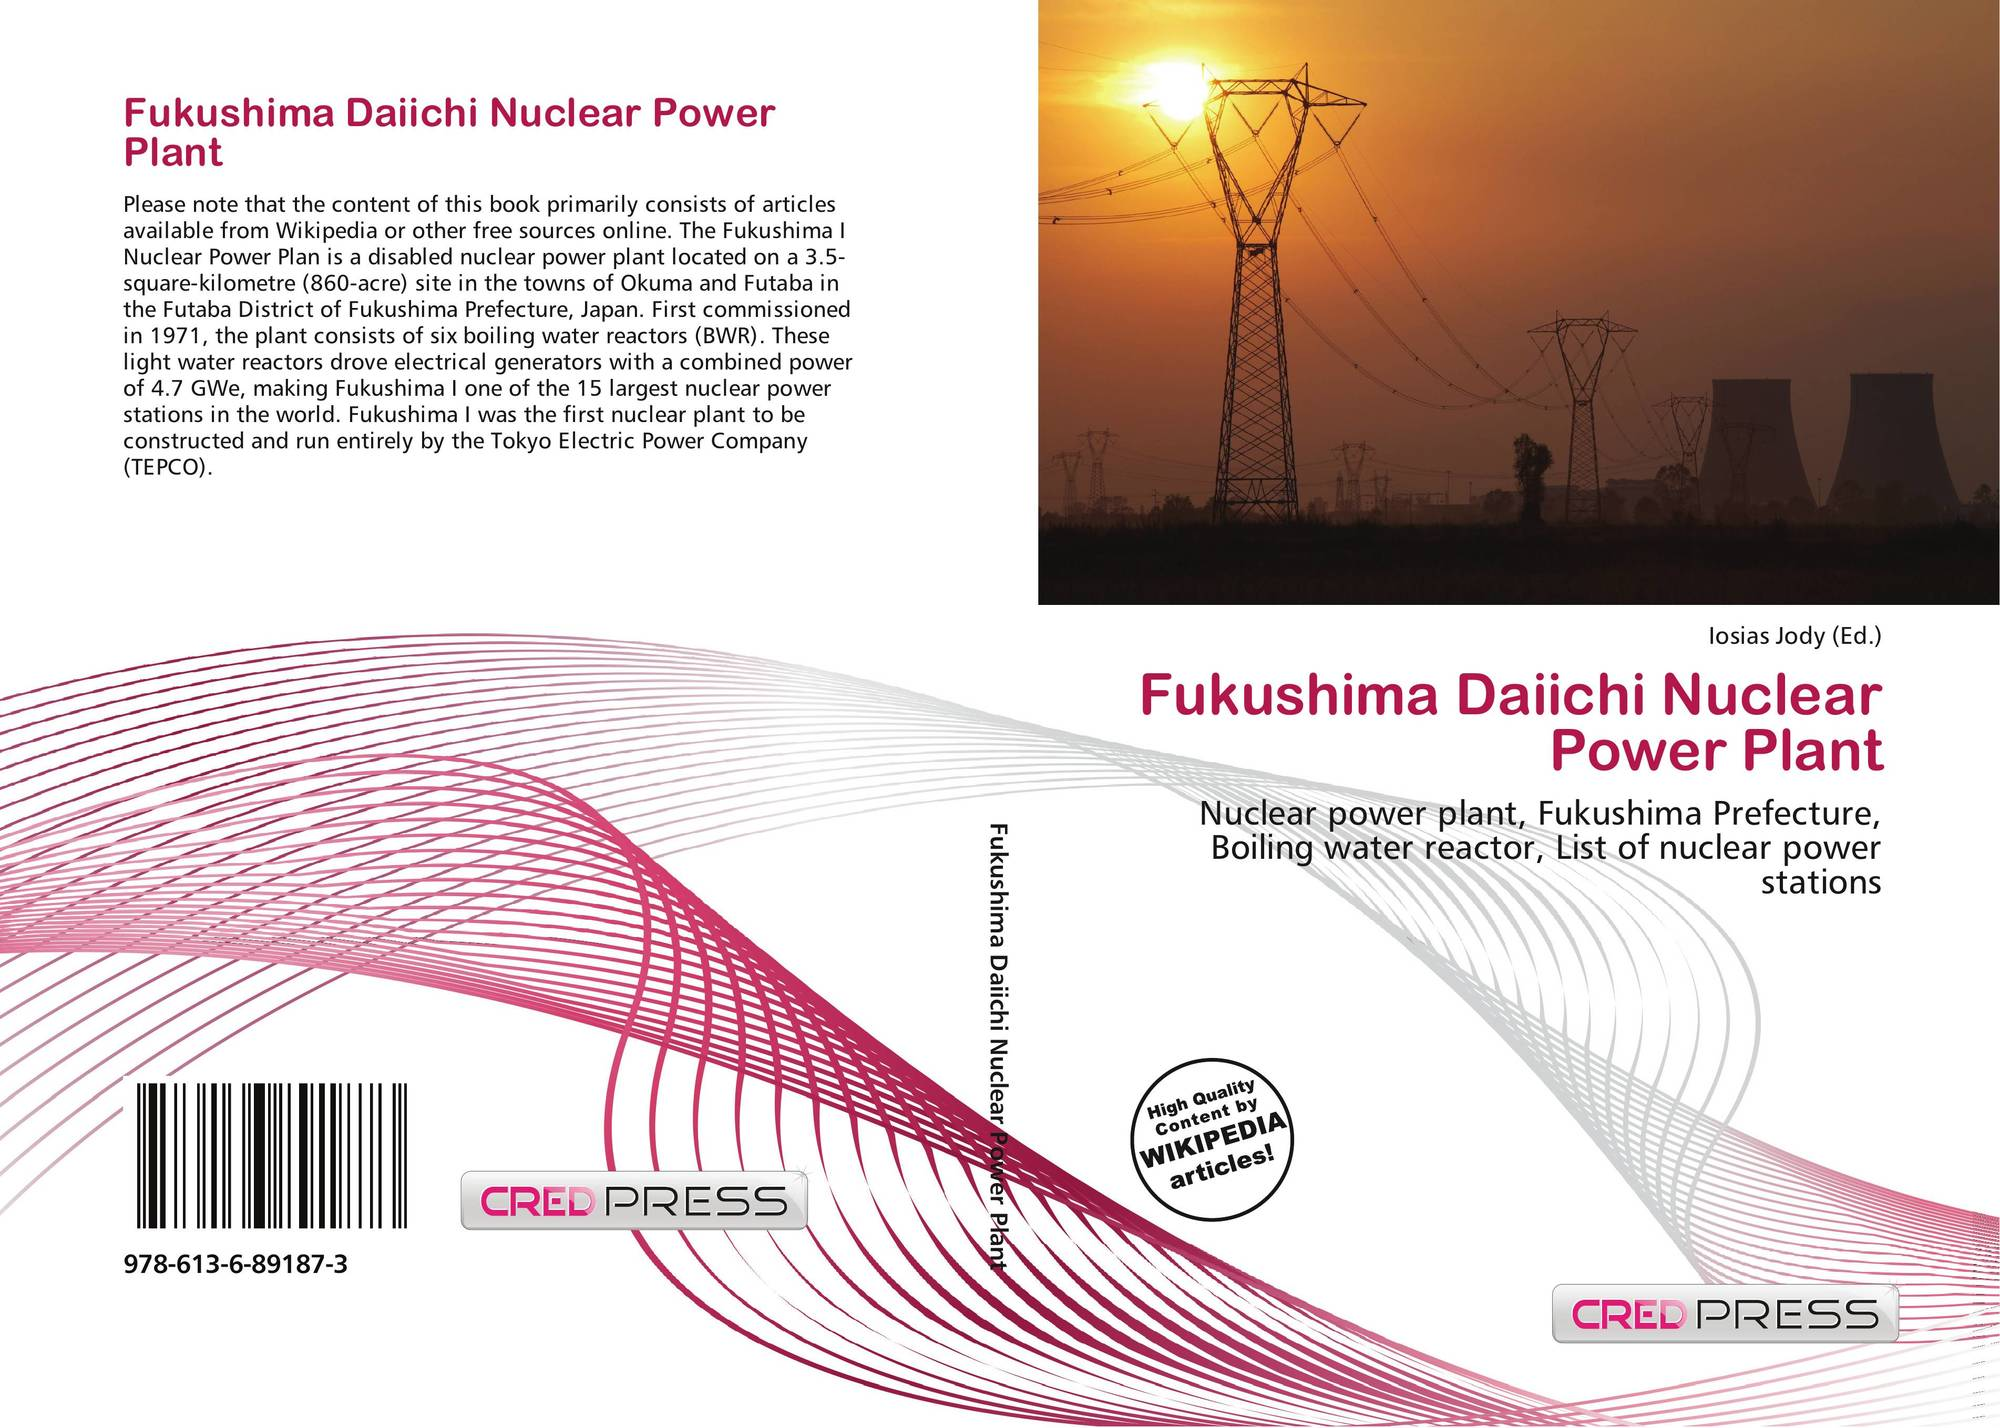 Search Results For Power Reactor Nuclear Plant Diagram And Explanation Bookcover Of Fukushima Daiichi Omni Badge 9307e2201e5f762643a64561af3456be64a87707602f96b92ef18a9bbcada116